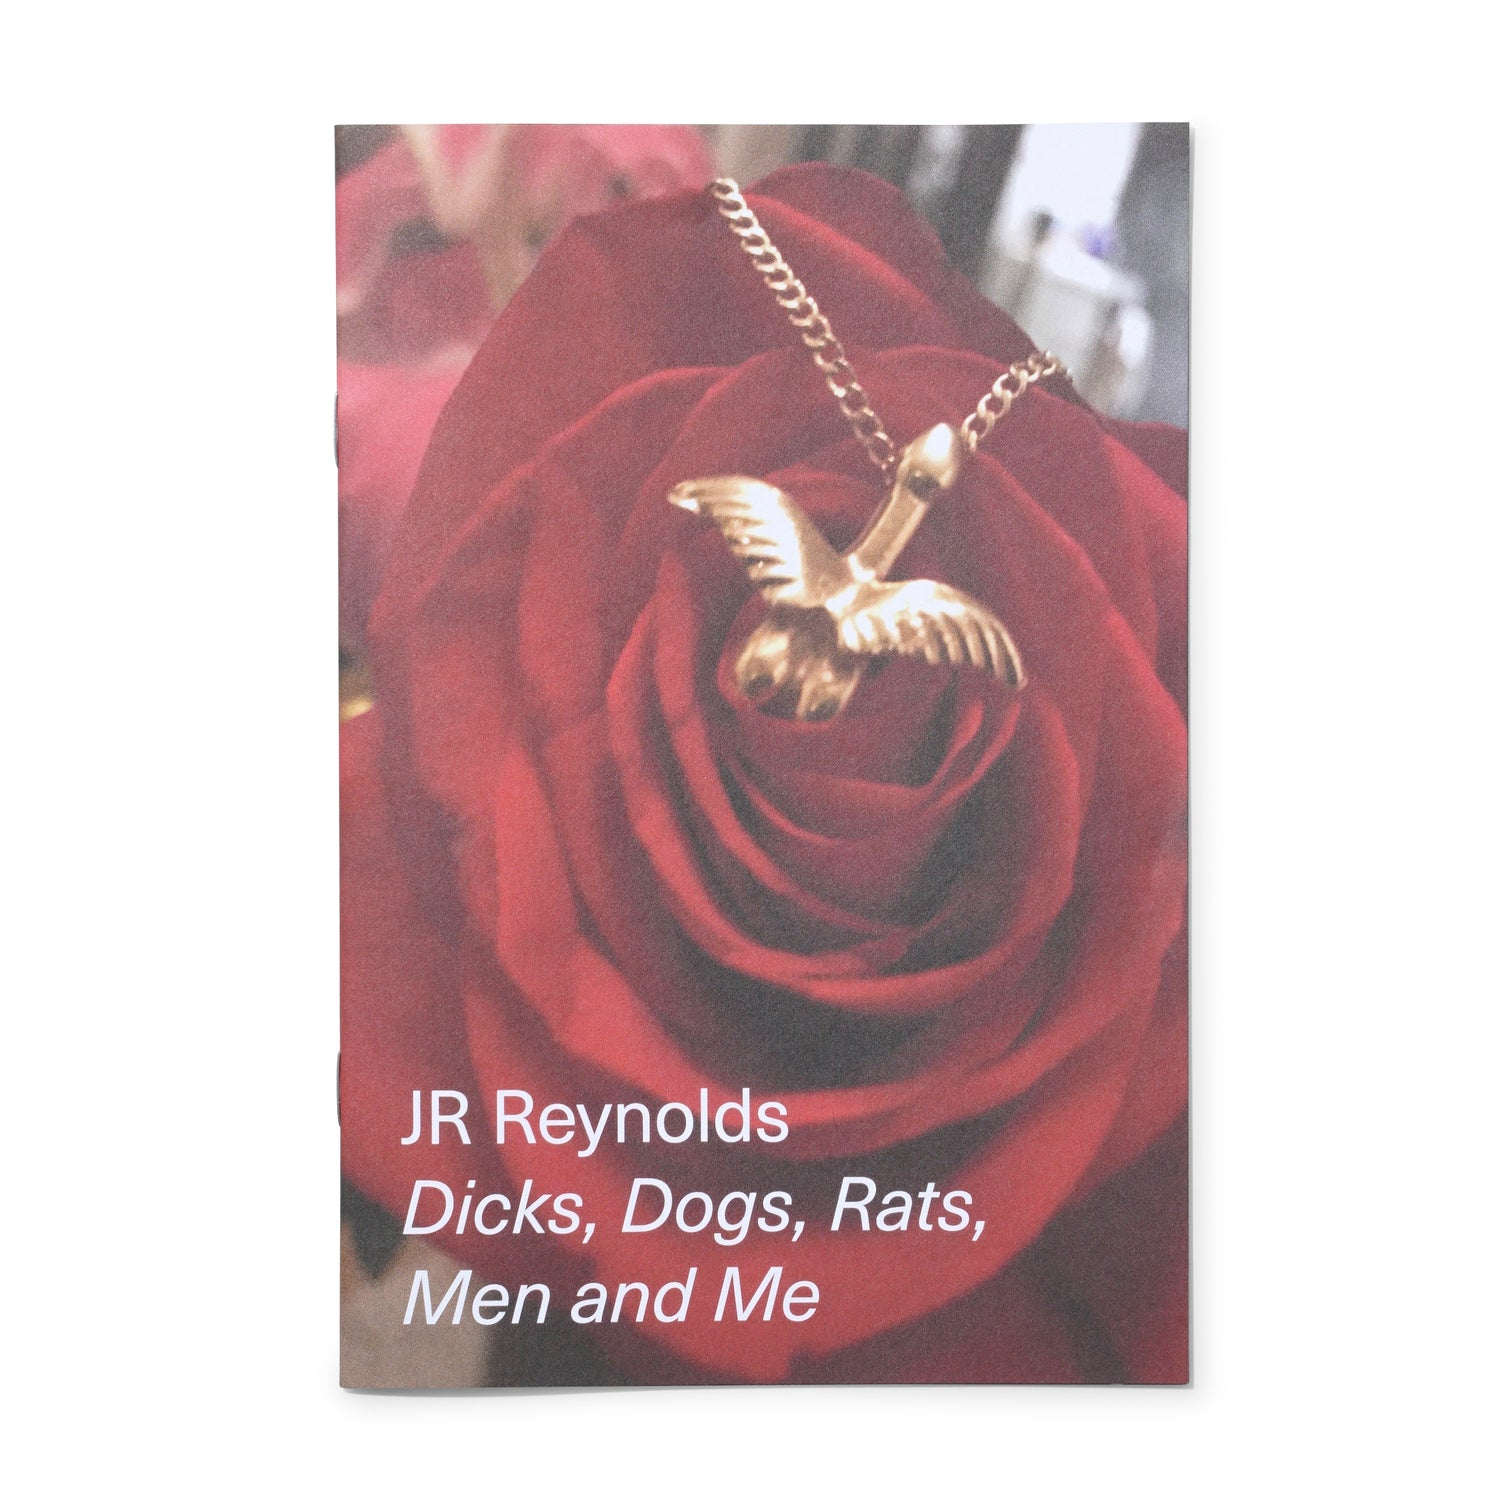 JR Reynolds - 'Dicks, Dogs, Rats, Men and Me' Zine